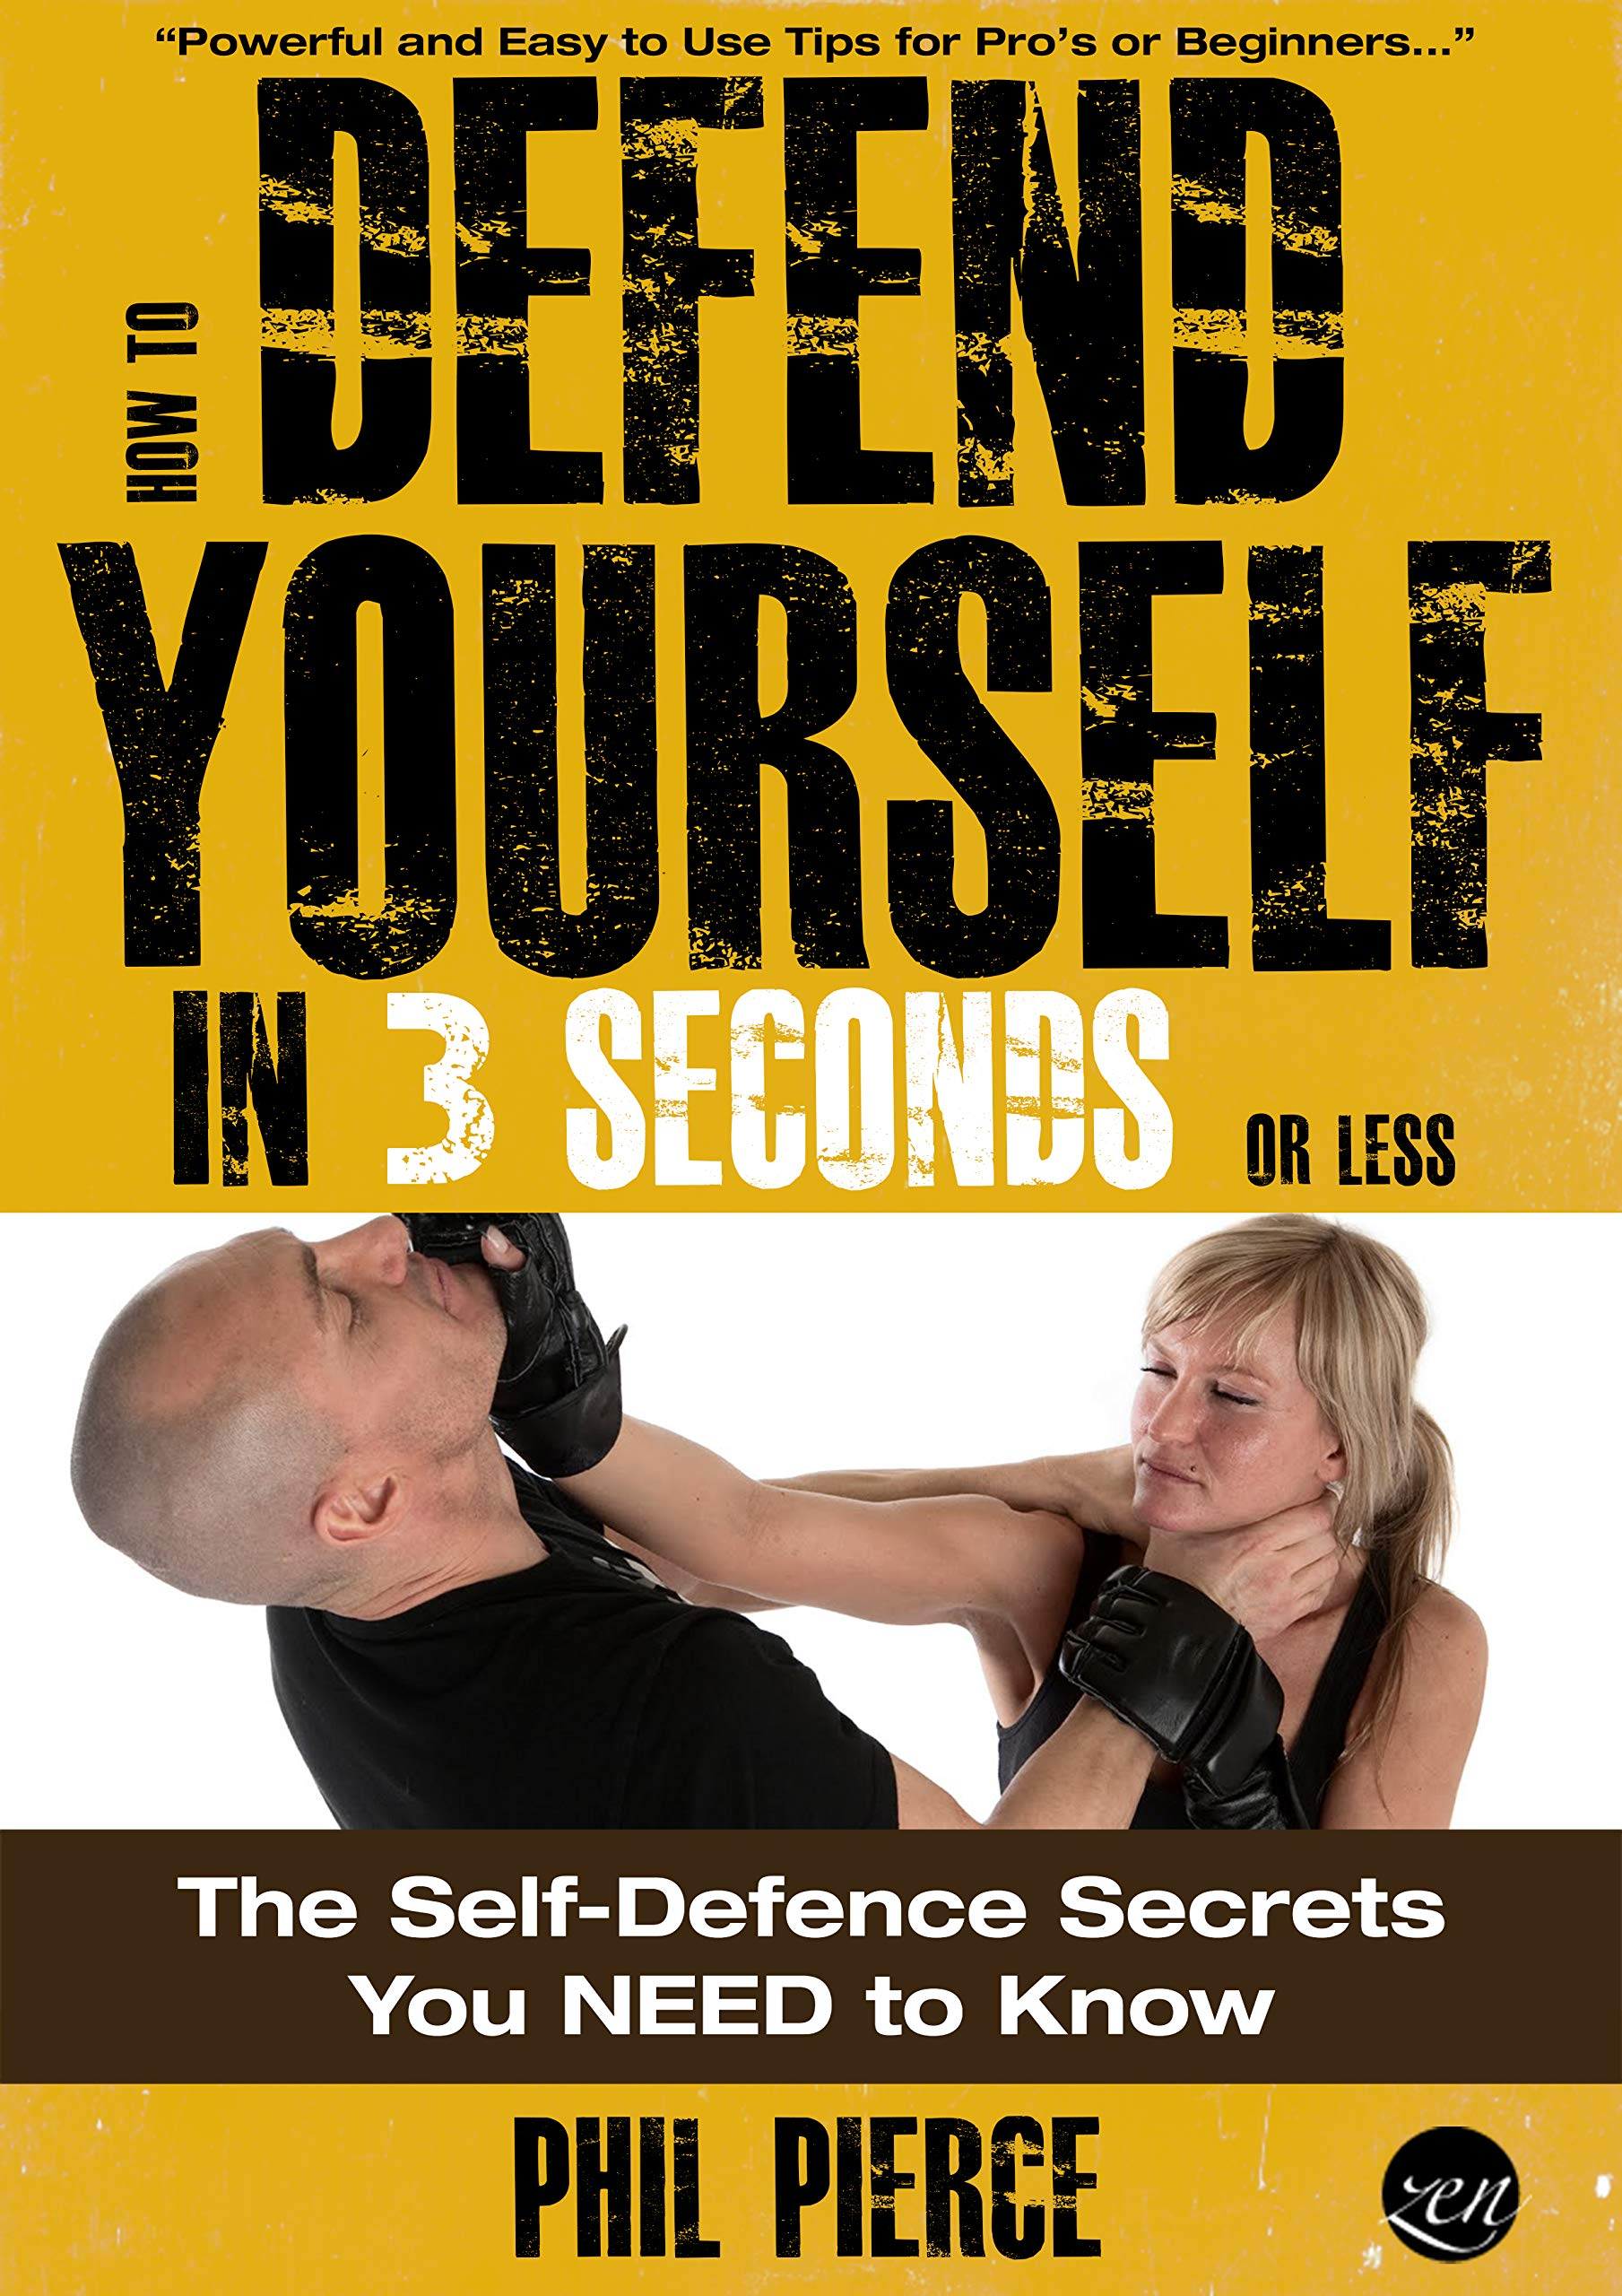 How to Defend Yourself in 3 Seconds (or Less!): The Self Defense Secrets You NEED to Know! (Self Defence & Martial Arts) (...